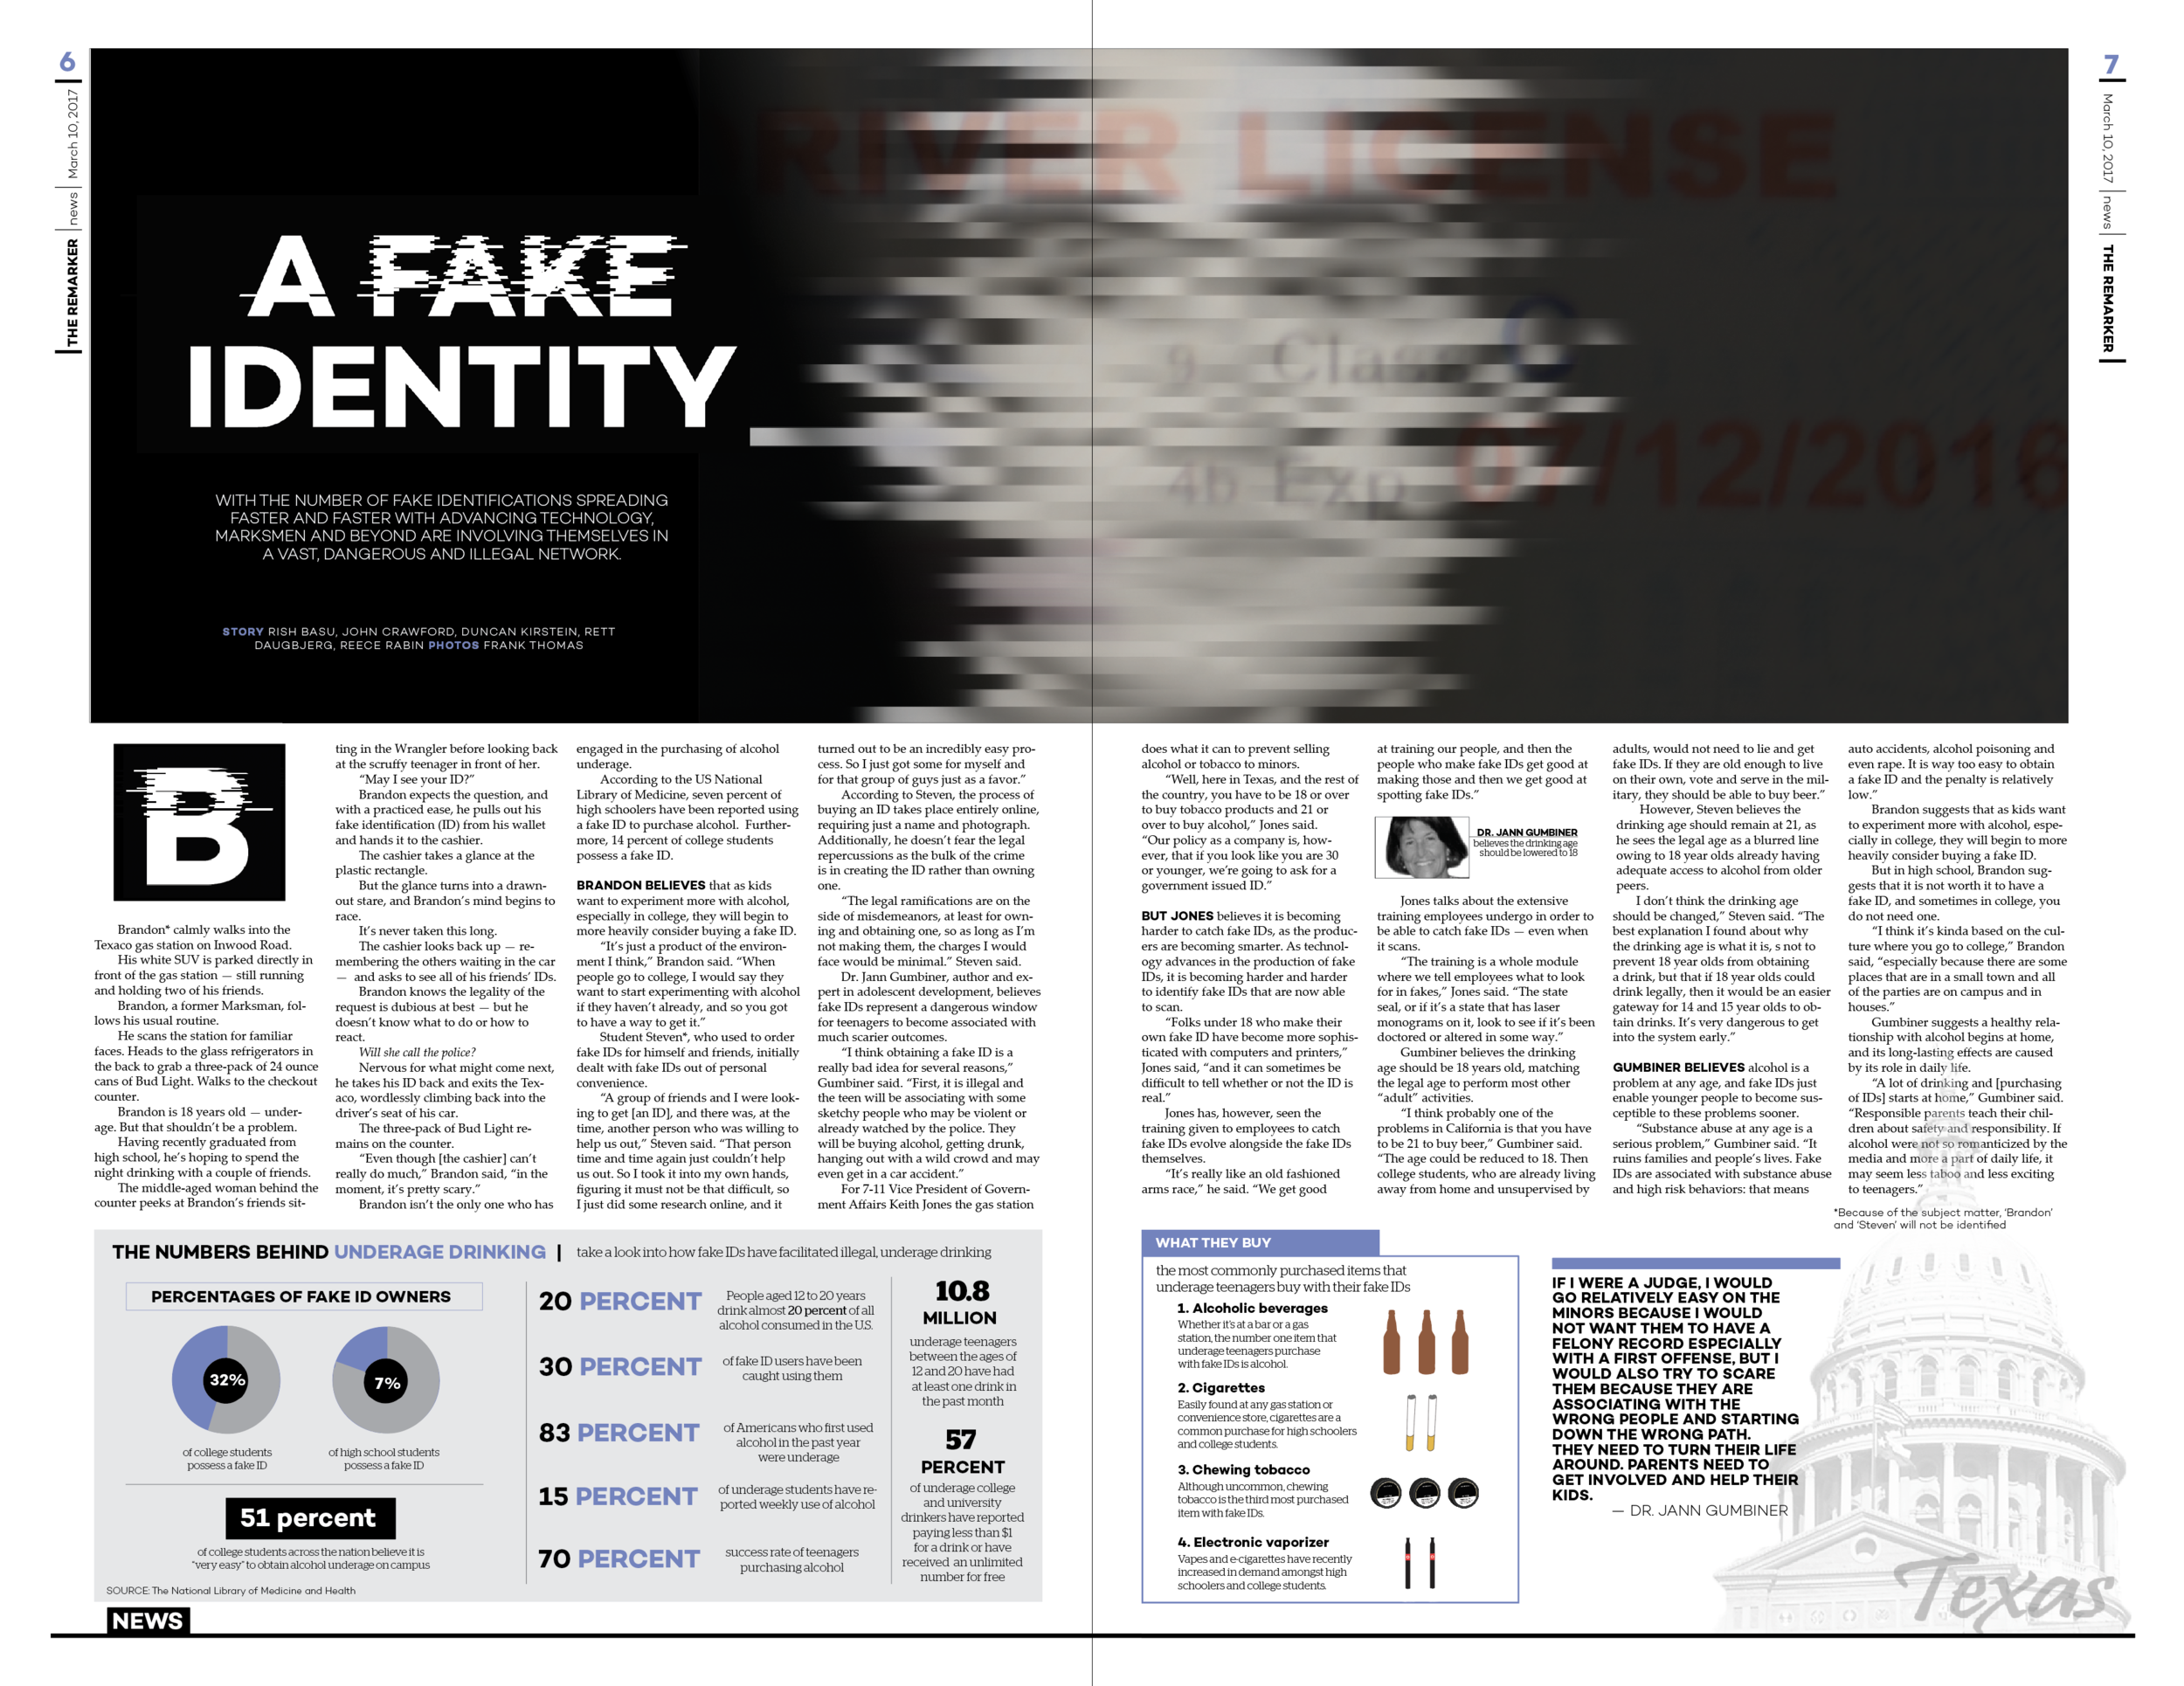 For this layout, I used a dominant visual that people associate with fake identities:a blurred face. Also, near the bottom of the centerspread, I included relevant infographic material along with watermarks that people associate with fake IDs.